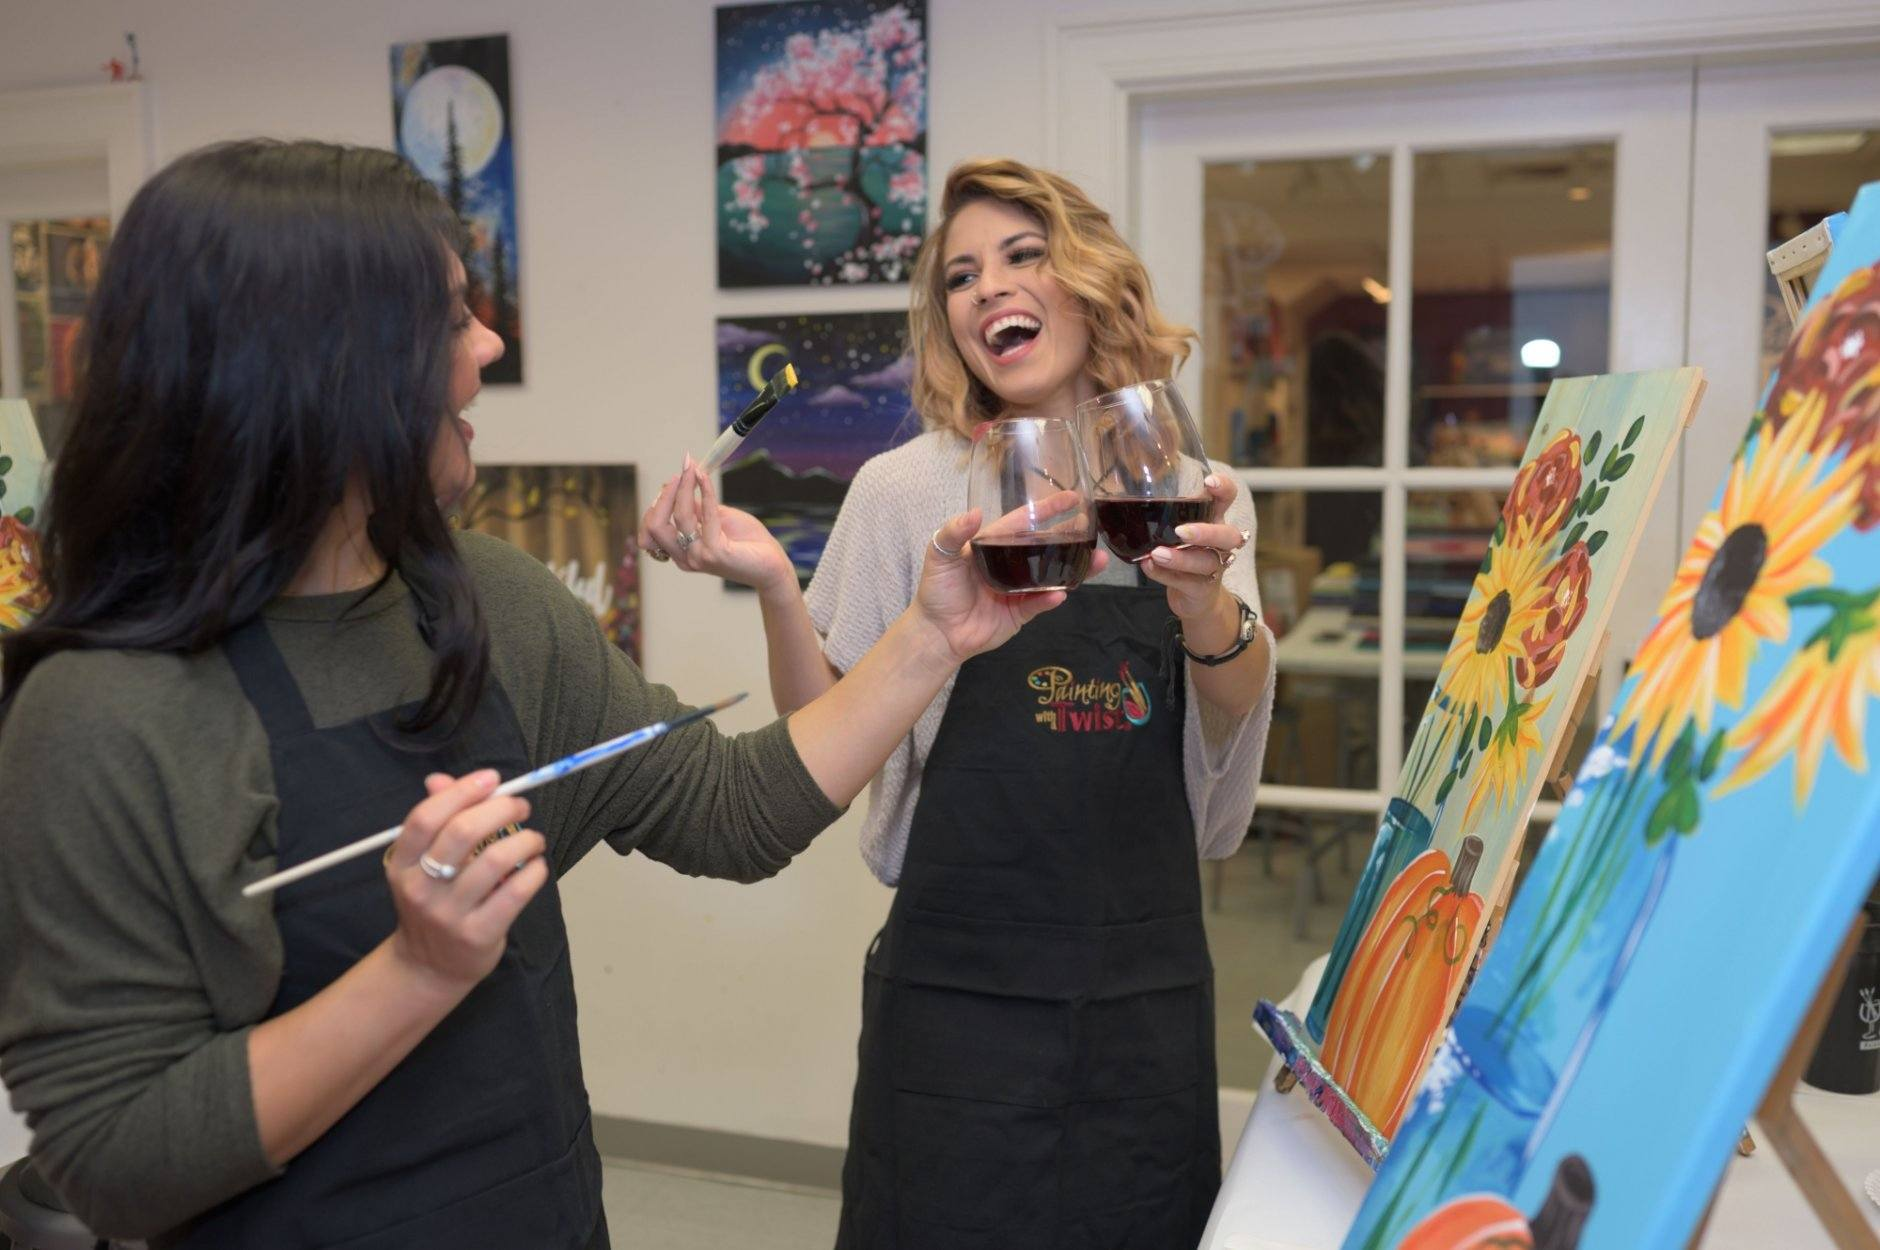 This 2019 photo provided by Painting with a Twist shows some patrons during at a Painting with a Twist event in Mandeville, La. In recent years, the interactive painting industry has become a global sensation. Around the world, adults can spend their nights out learning to paint in a relaxed, BYOB setting. Thousands of franchises exist to help us all unleash our inner creative. (Painting with a Twist via AP)